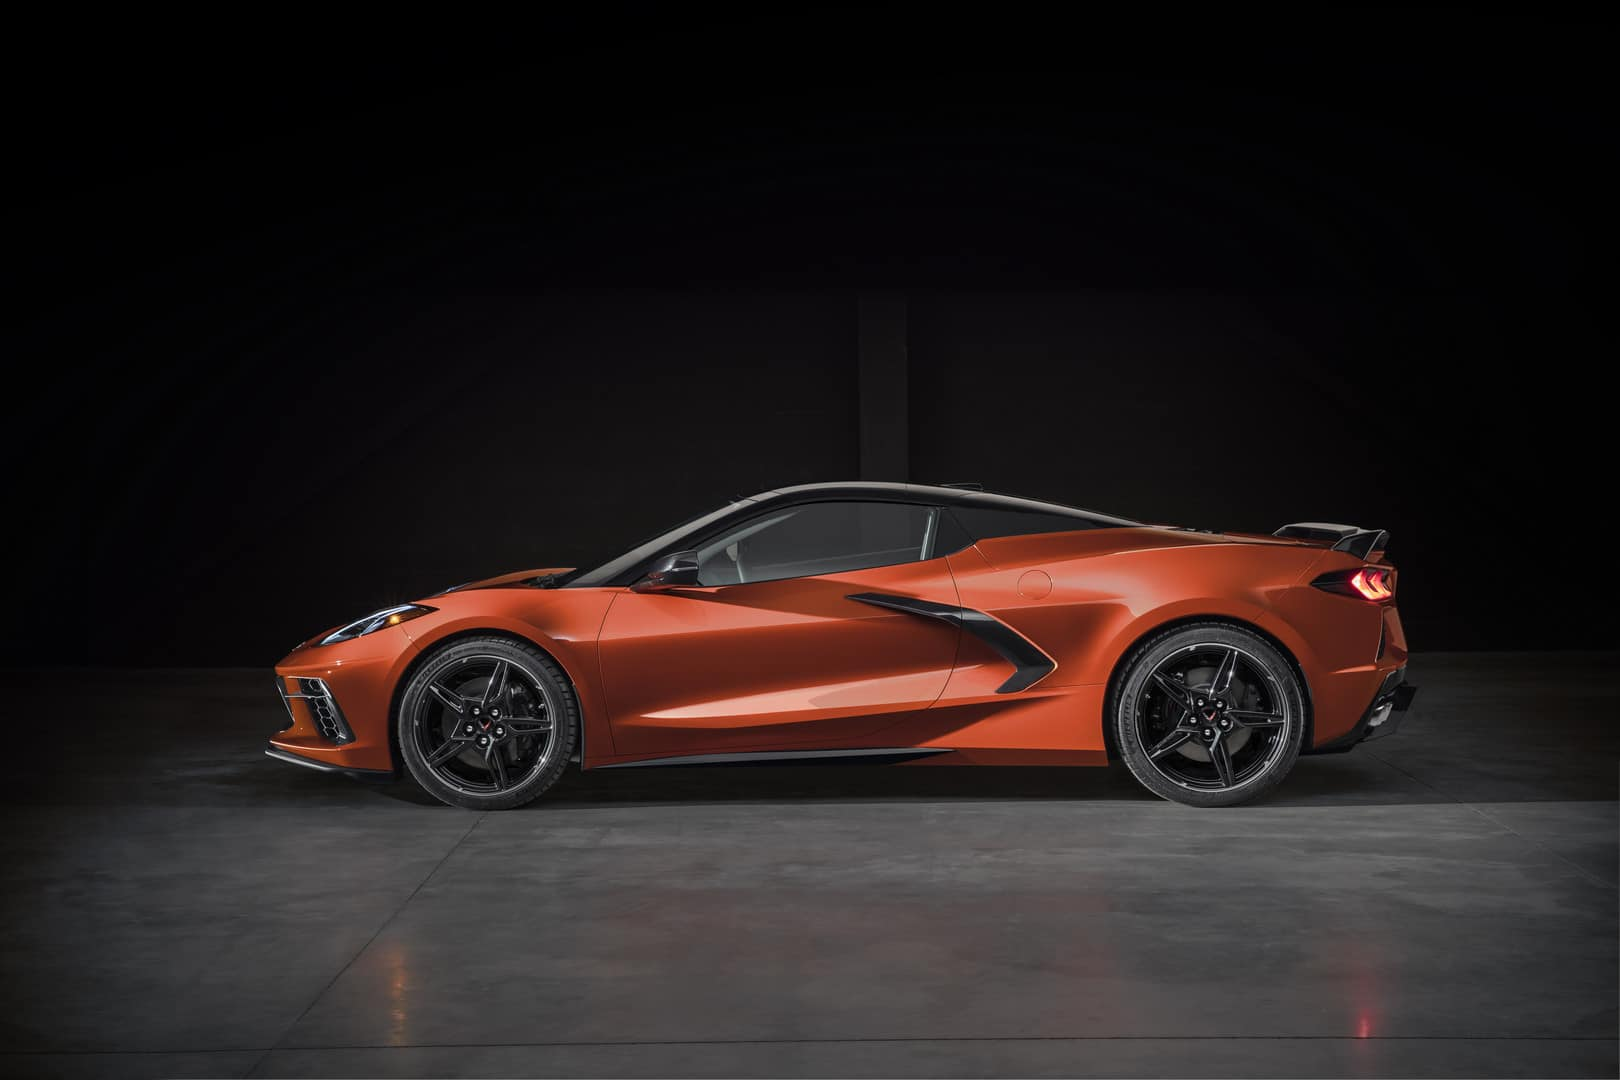 2020 Chevrolet Corvette Stingray Convertible 7